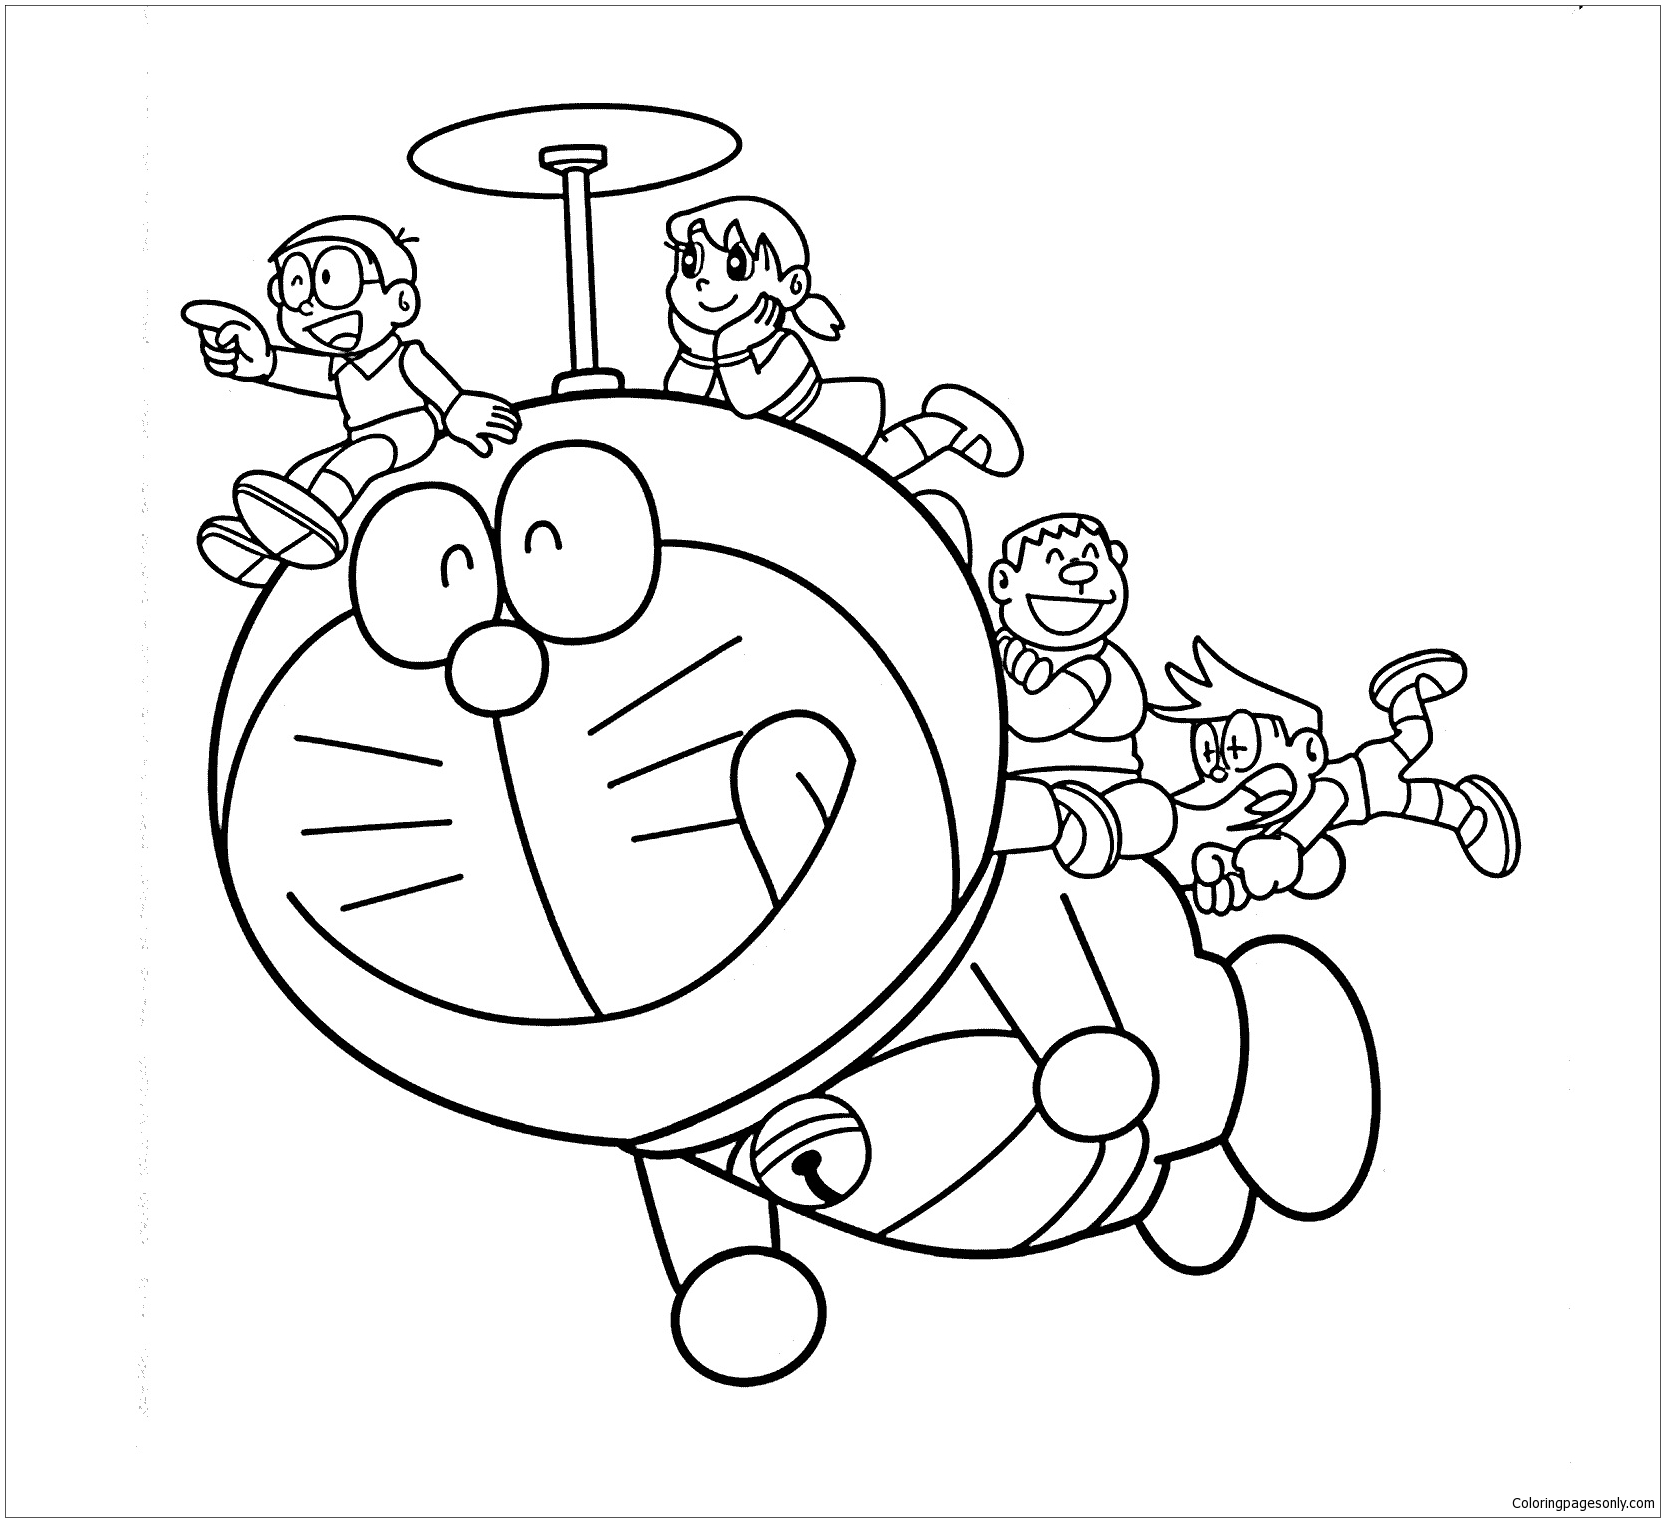 Doraemon Helicopter Coloring Page Free Coloring Pages Online